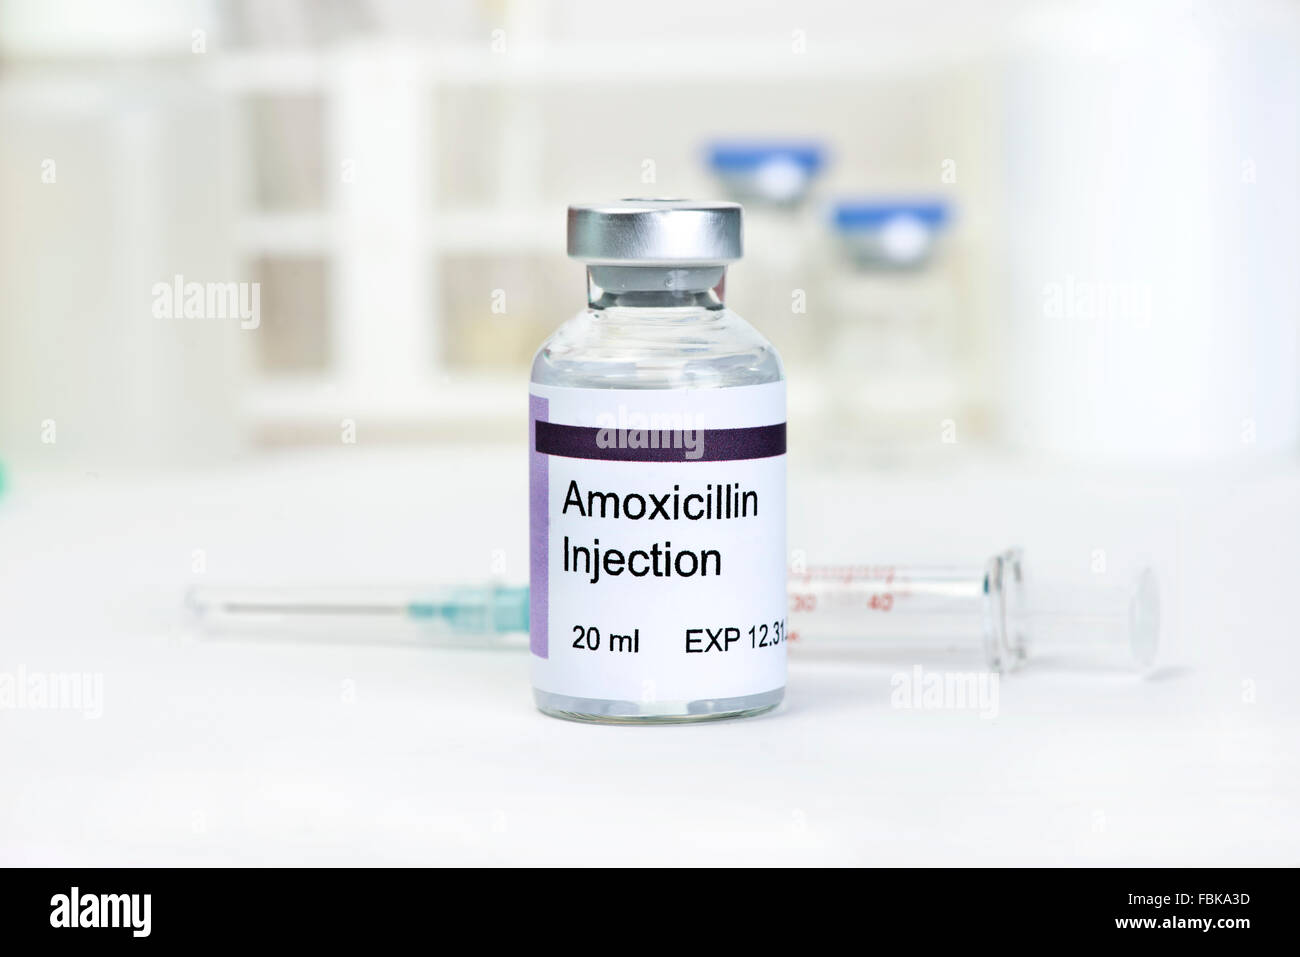 Amoxicillin injection. Label is fictitious, and any resemblance to actual products is purely coincidental. - Stock Image